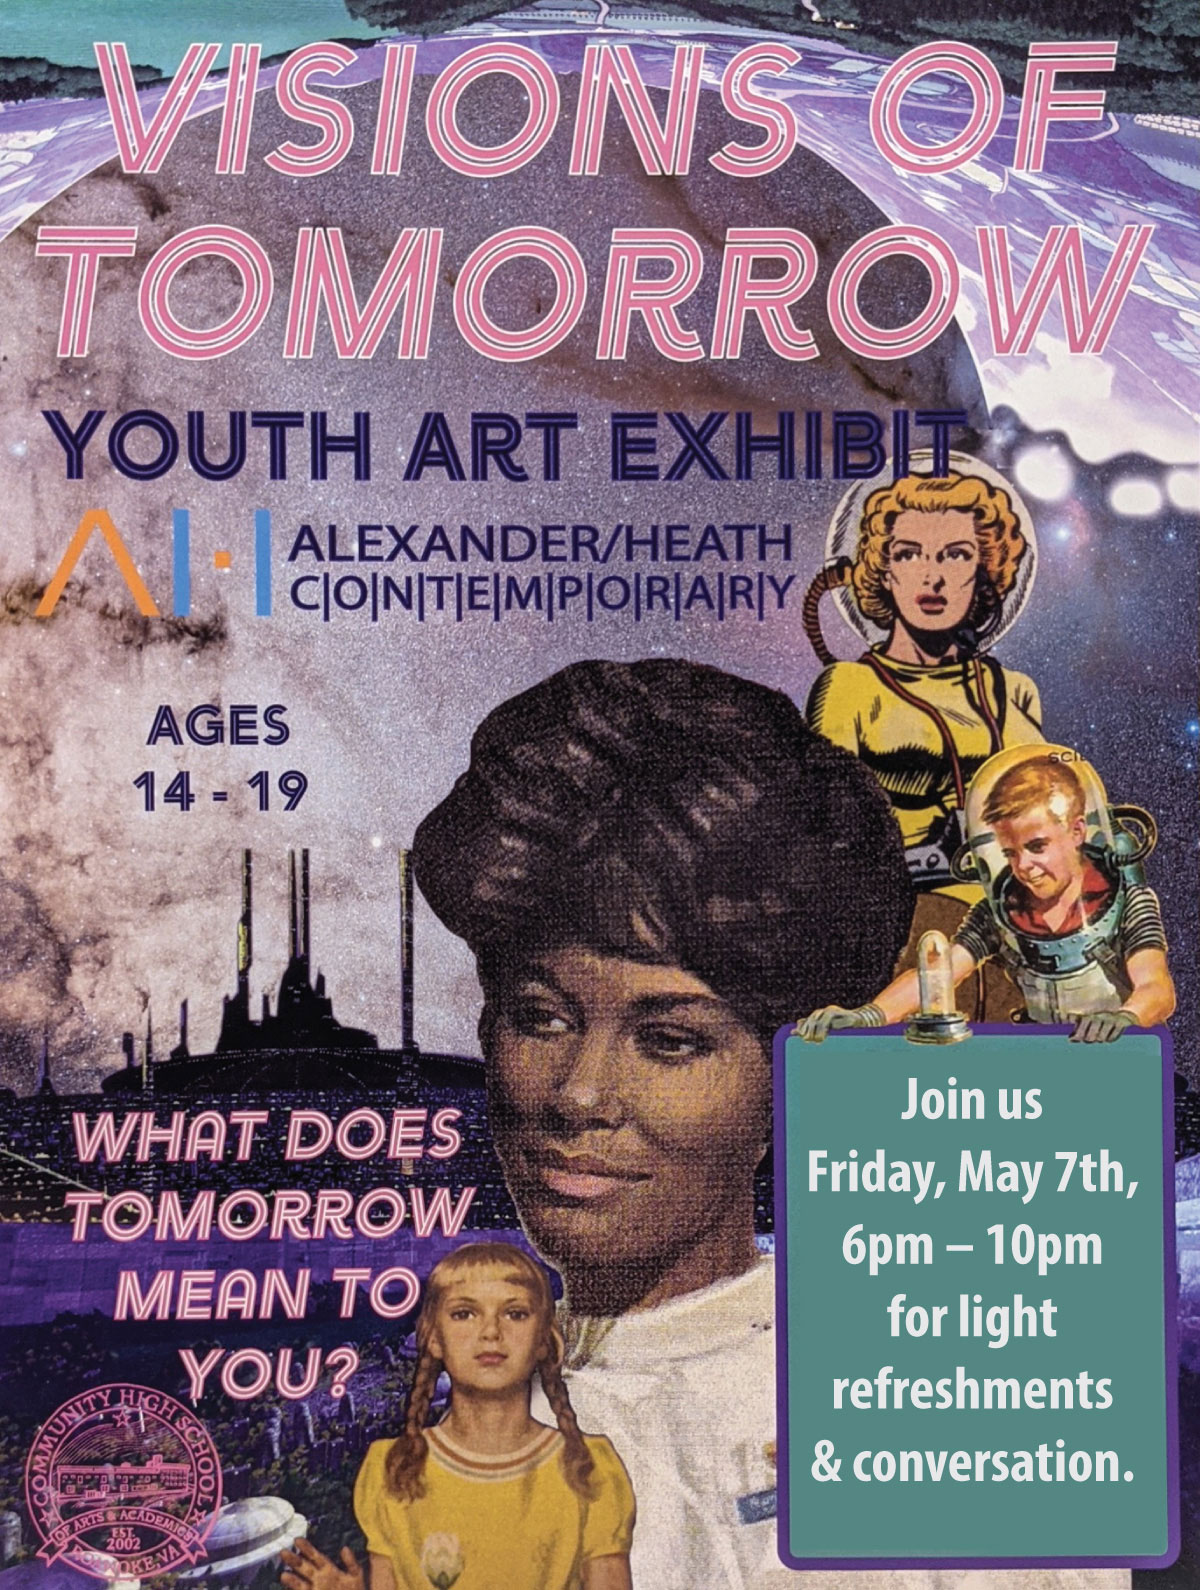 Visions of Tomorrow / Youth Art Exhibit / Alexander Heath Contemporary / Roanoke, Virginia